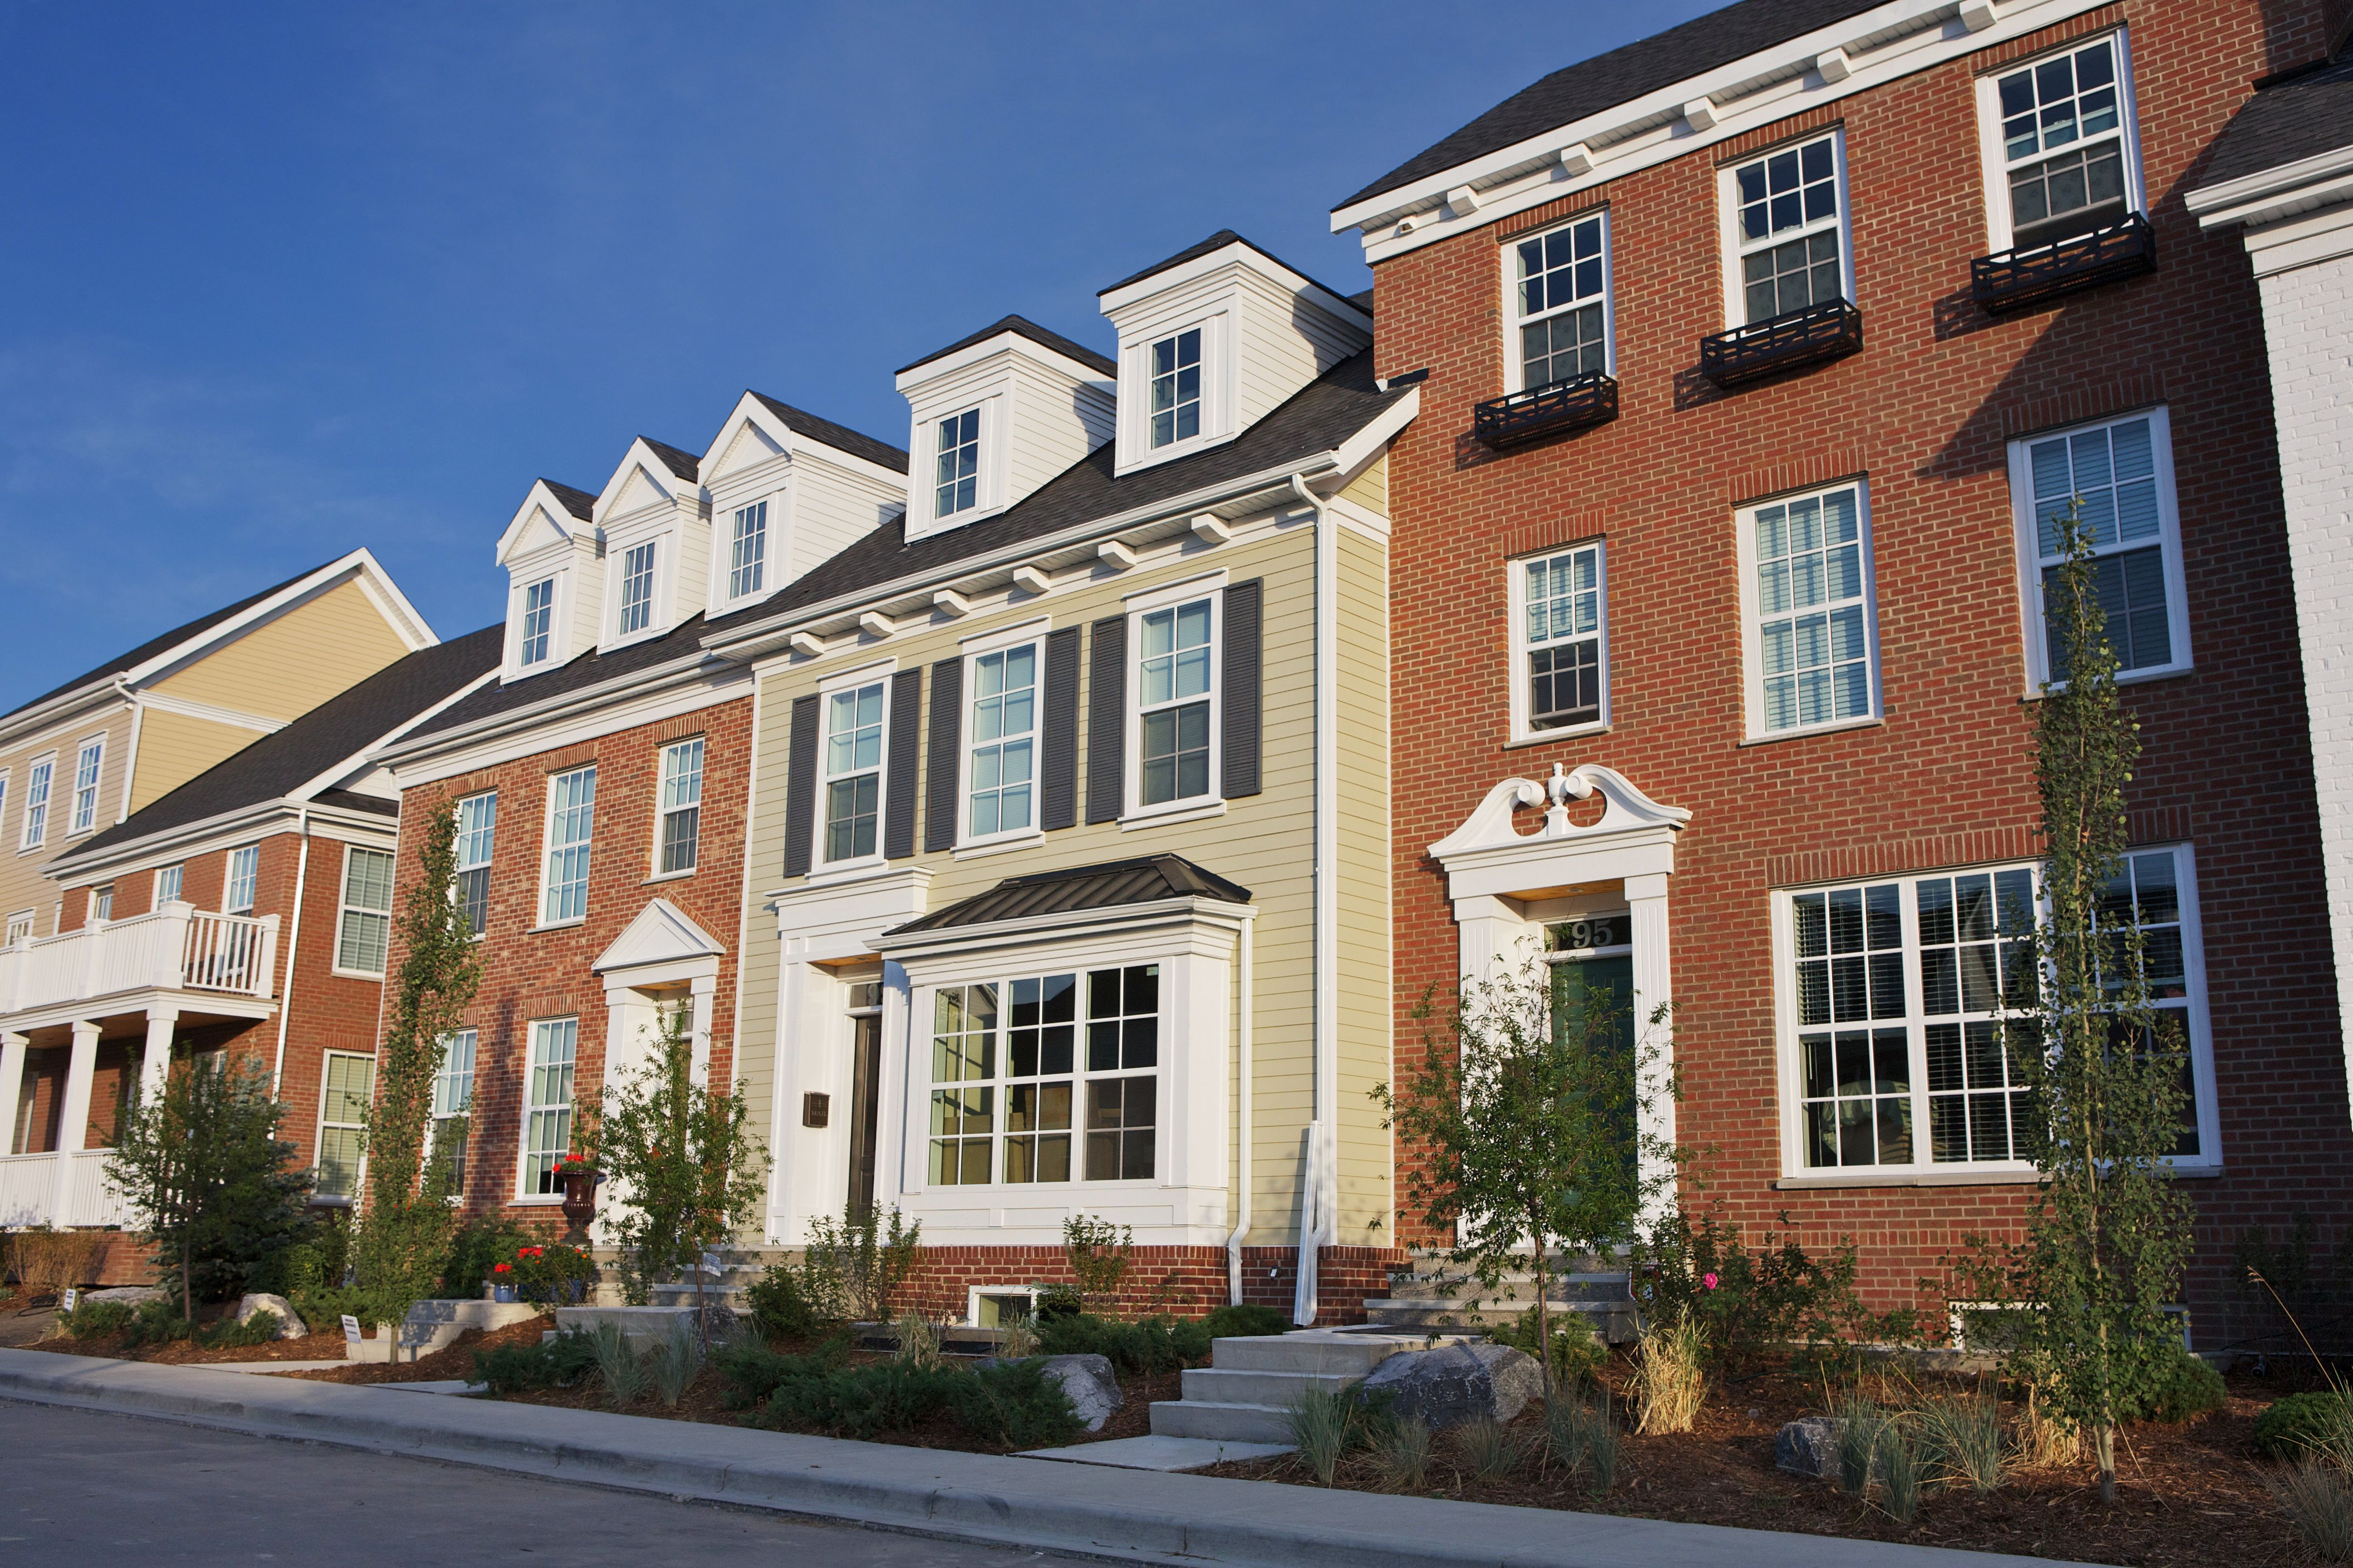 Colonial Homes With Dormer Windows Custom Window Boxes James Hardie Siding And Brick Victoria Cross Townhomes Townhouse Cottage Style Homes Colonial House